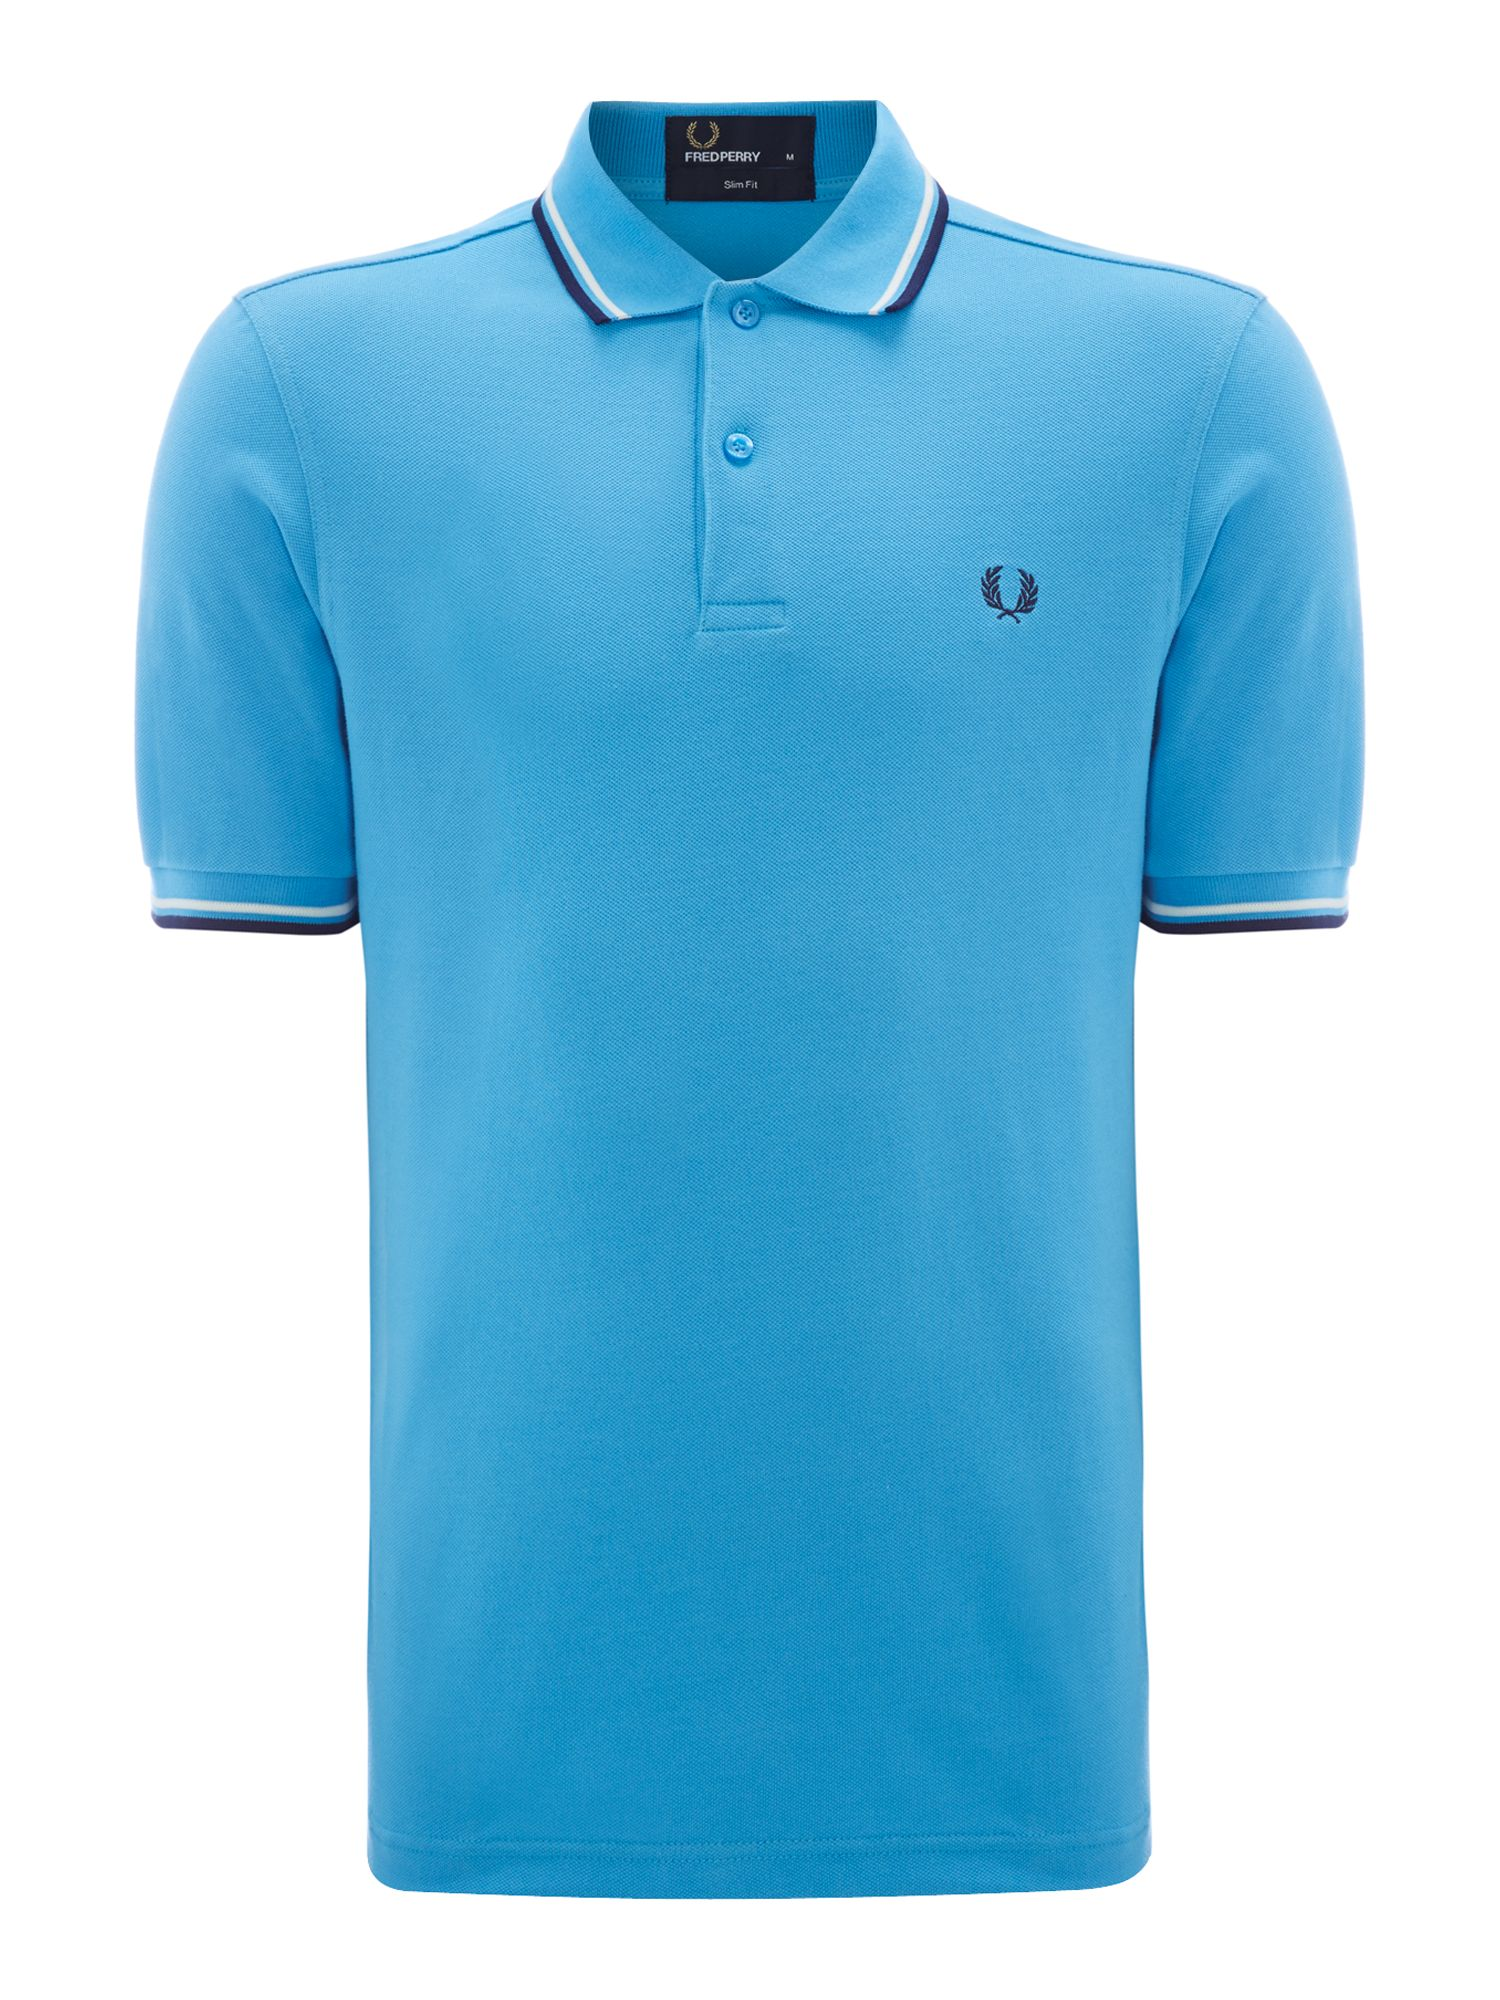 Classic slim fit twin tipped polo shirt